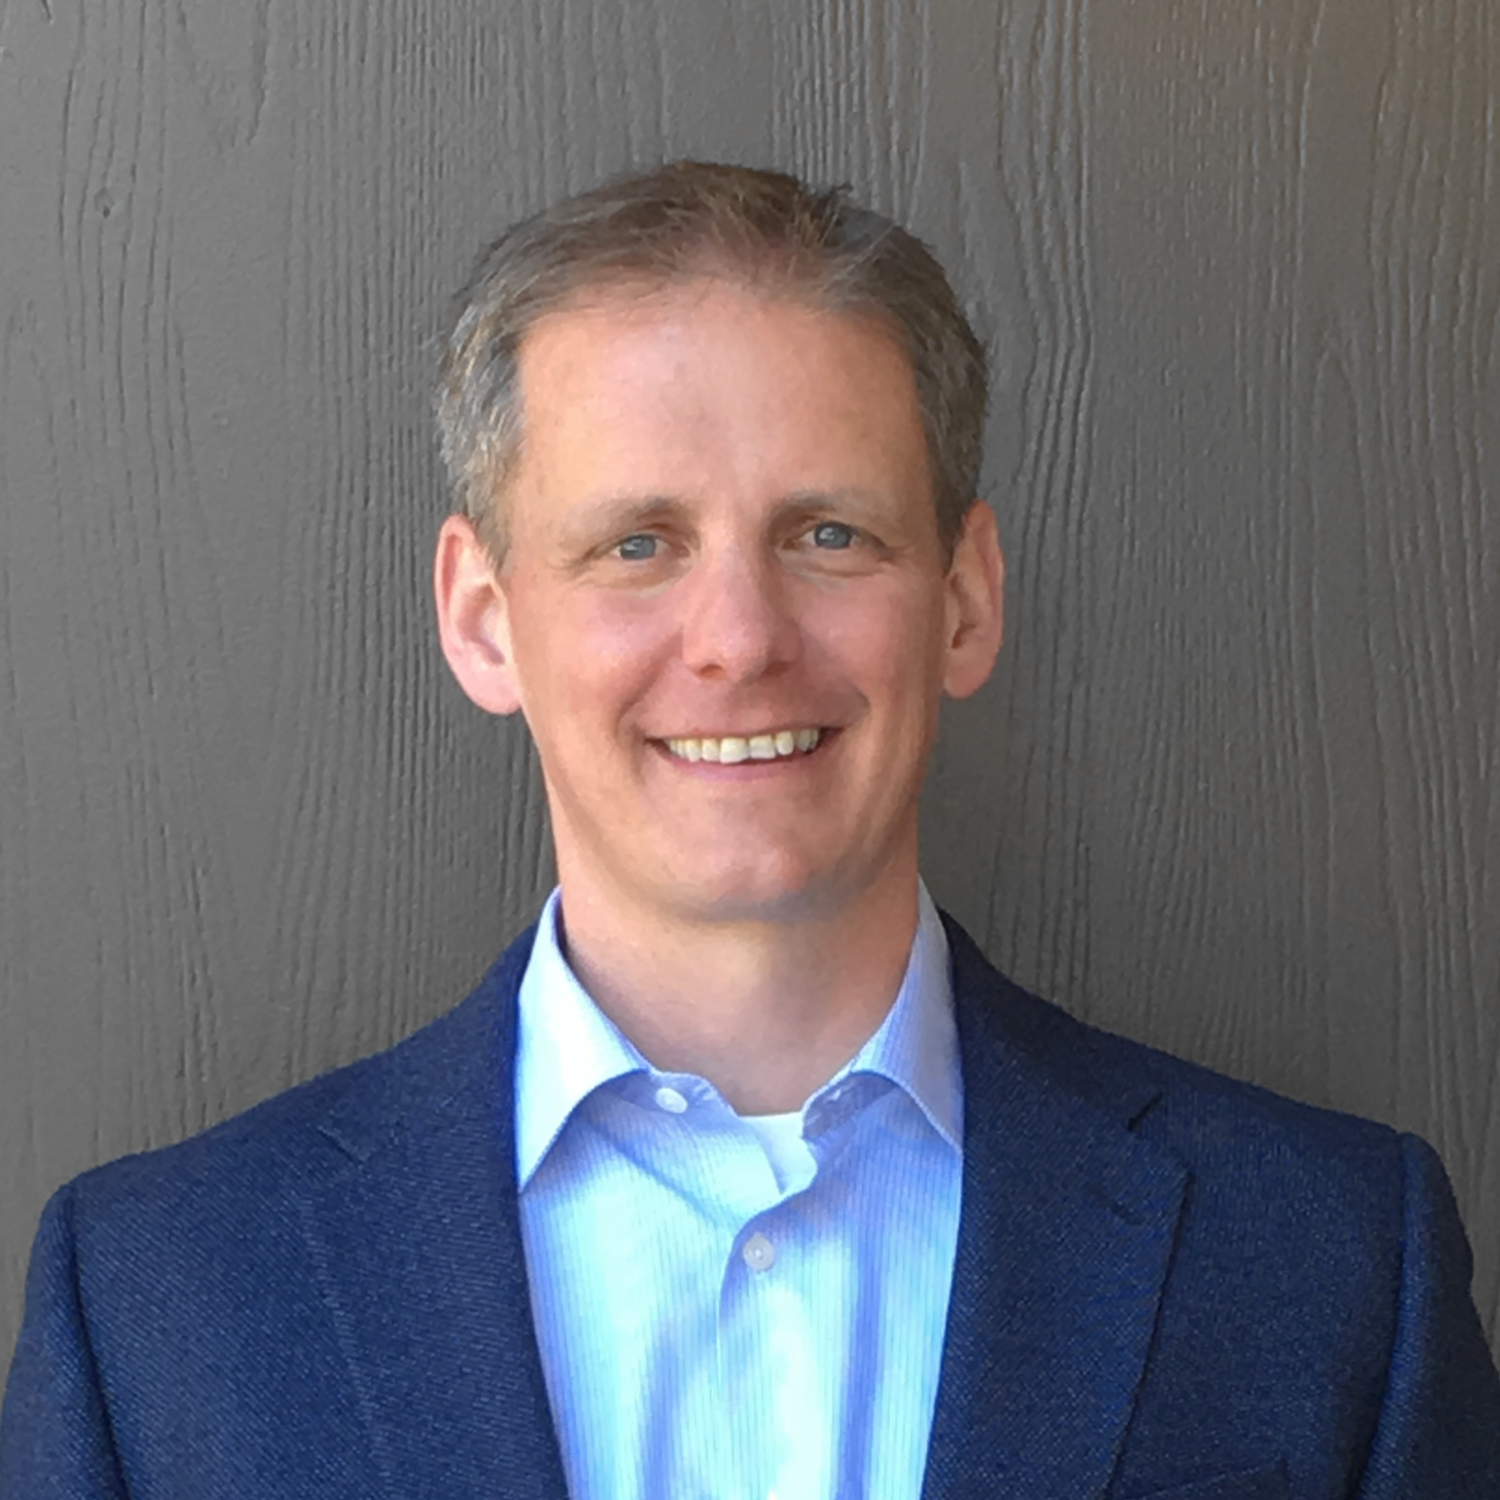 Jon Buck, Elder/Teaching Pastor - Jon began attending FBC in 2005. He graduated from The Master's Seminary (M.Div.) in 2012 and serves as the Teaching Pastor at FBC. Jon and his wife, Alyssa, have six children: Hannah, Katie, Sarah, Maggie, Abbie, and Emma. He enjoys spending time with his family, reading, and running.